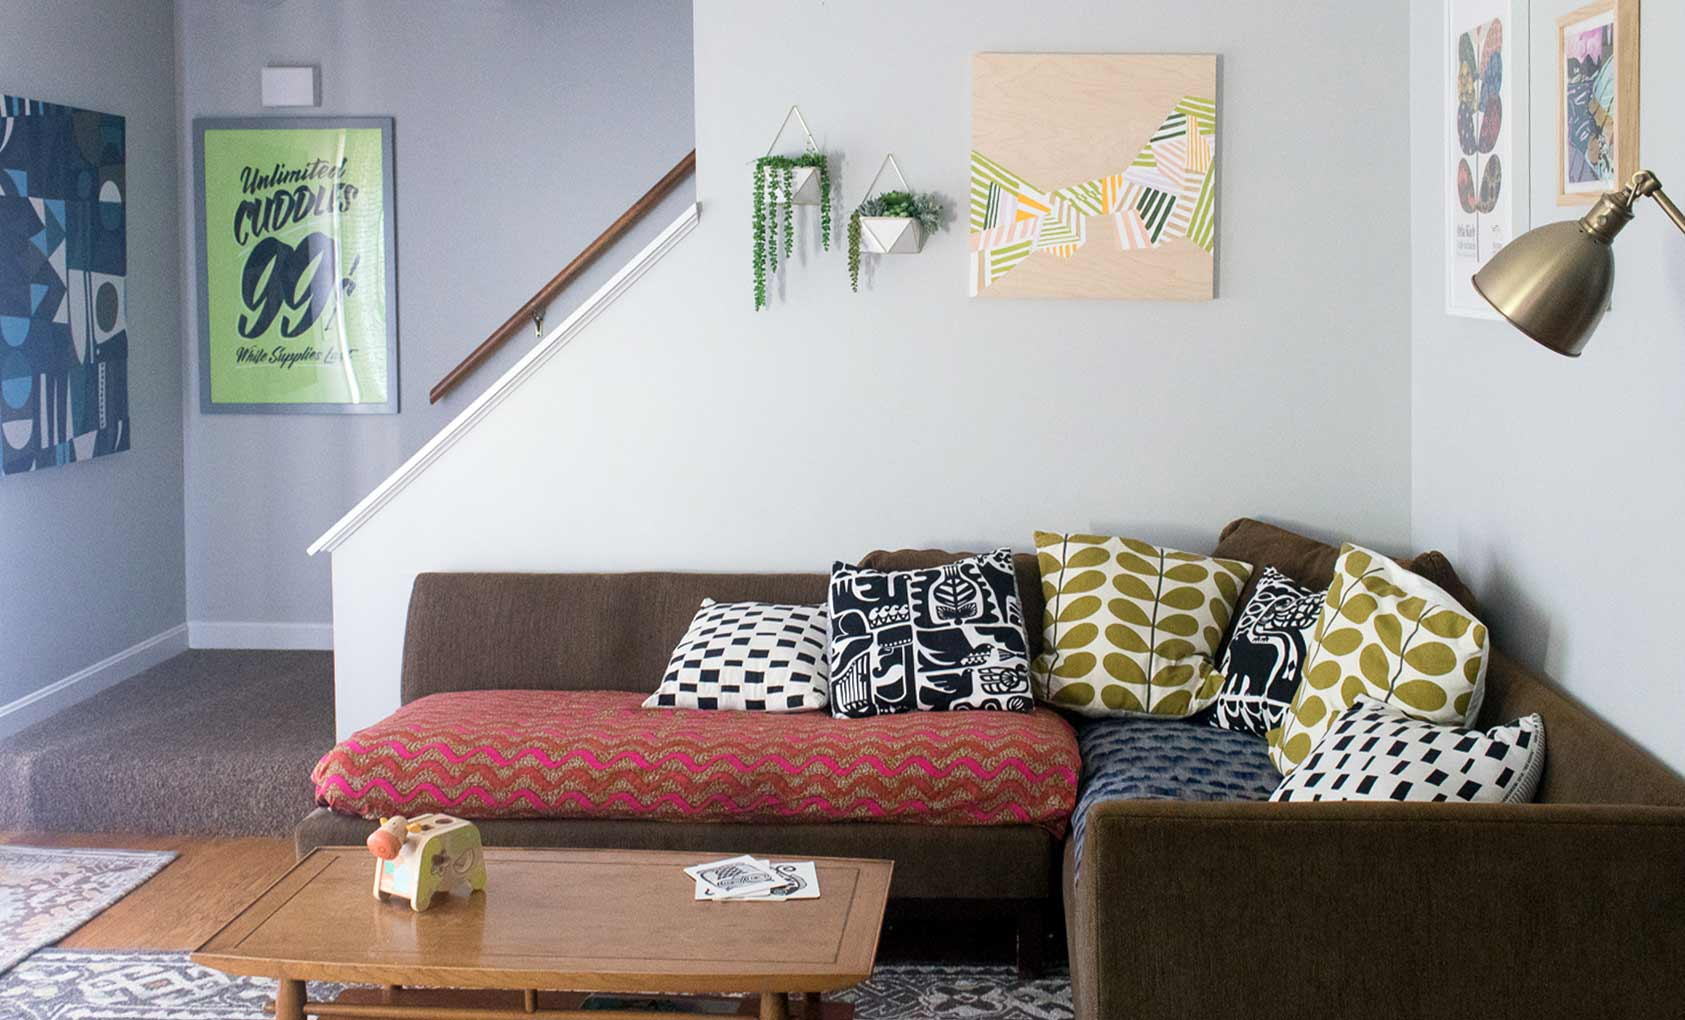 From Cookie-Cutter to Memorable in Maine, Design*Sponge